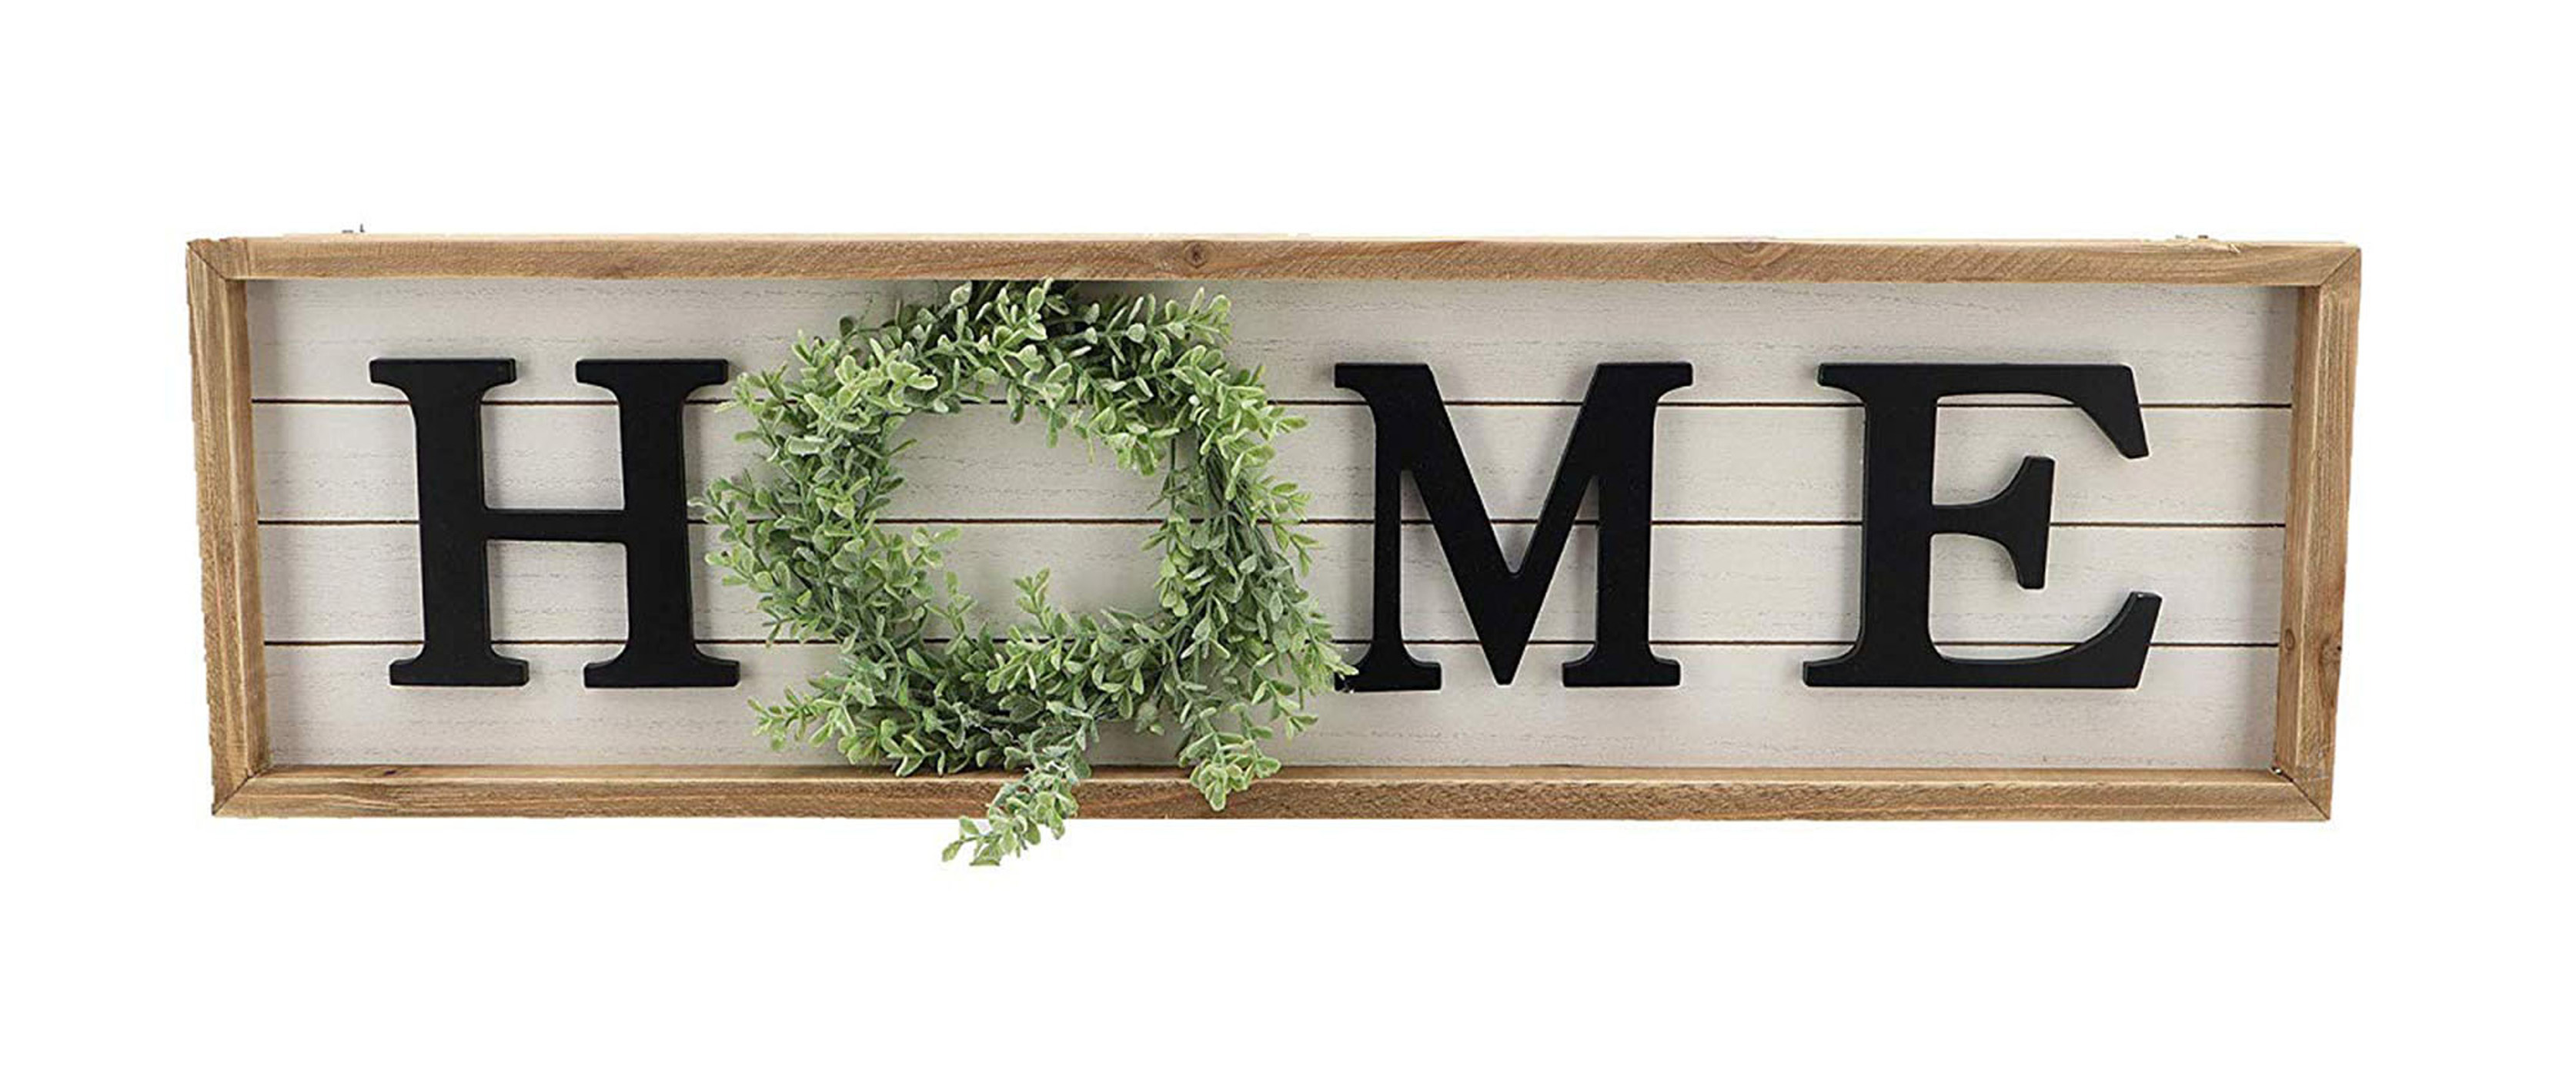 Paris Loft Wooden Framed Home Plaque With Green Wreath For The O Housewarming Home Decor Large Farmhouse Home Signs Plaque Wall Hanging Decor For Mantle Living Room 31 5x1 25x8 75 Walmart Com Walmart Com